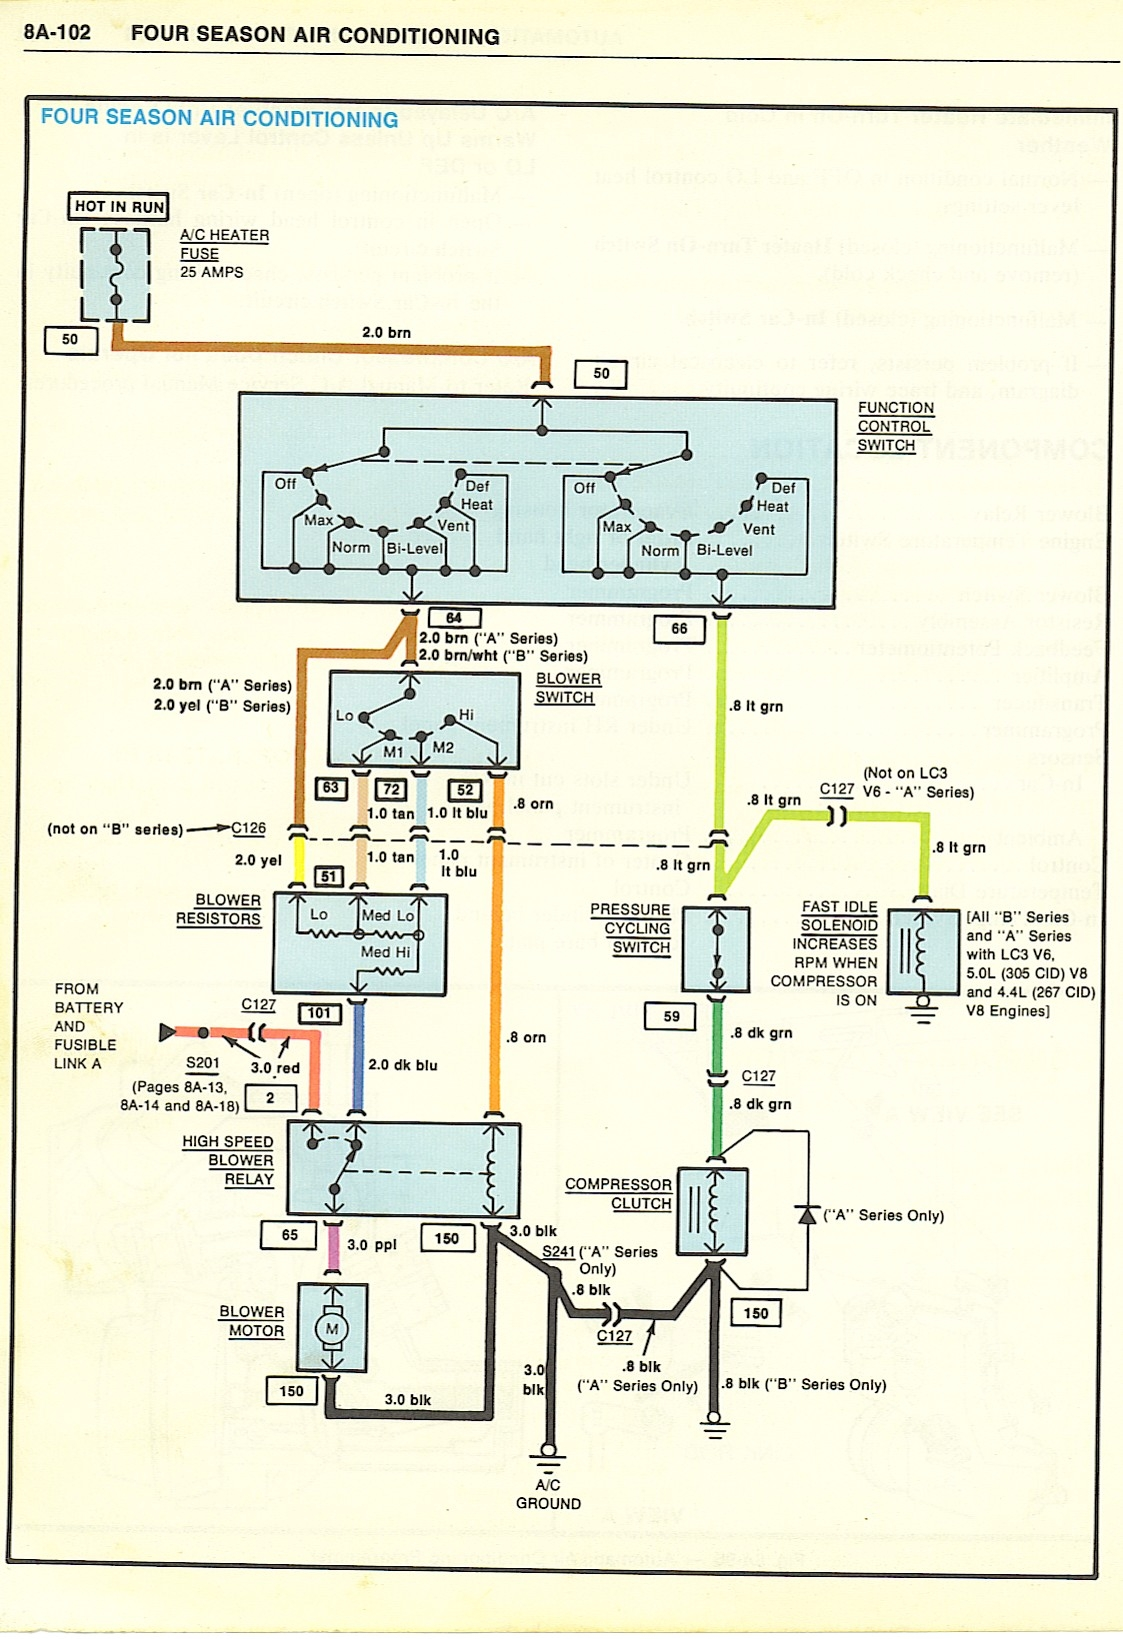 Chevy Diagrams Wiring 2 Schematics 1968 Camero A C Drawing